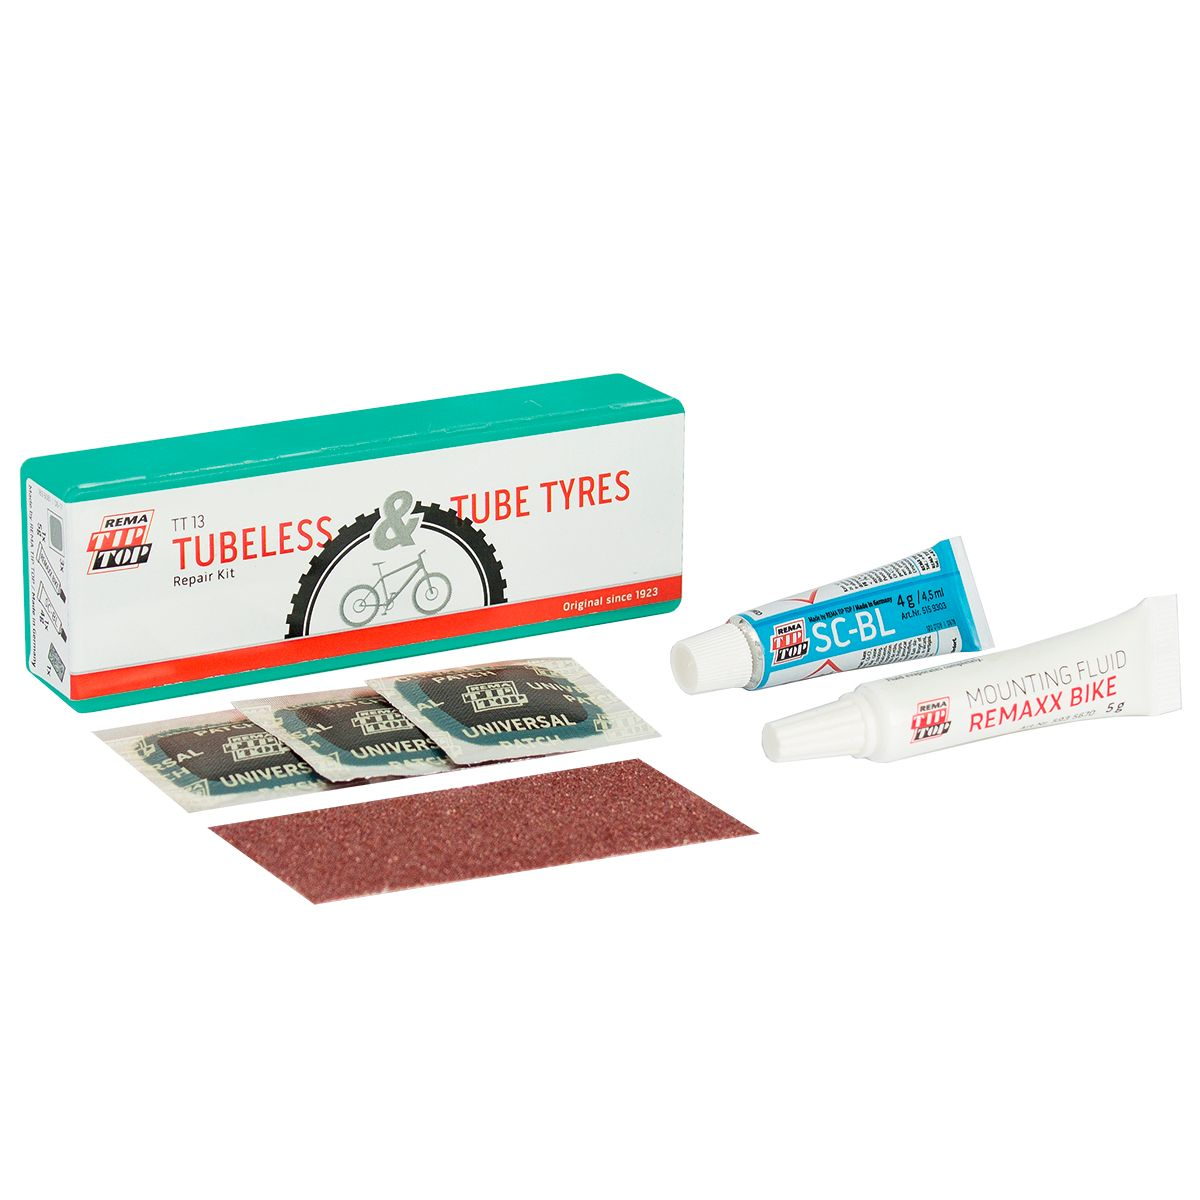 TT13 Tubeless Repair Kit